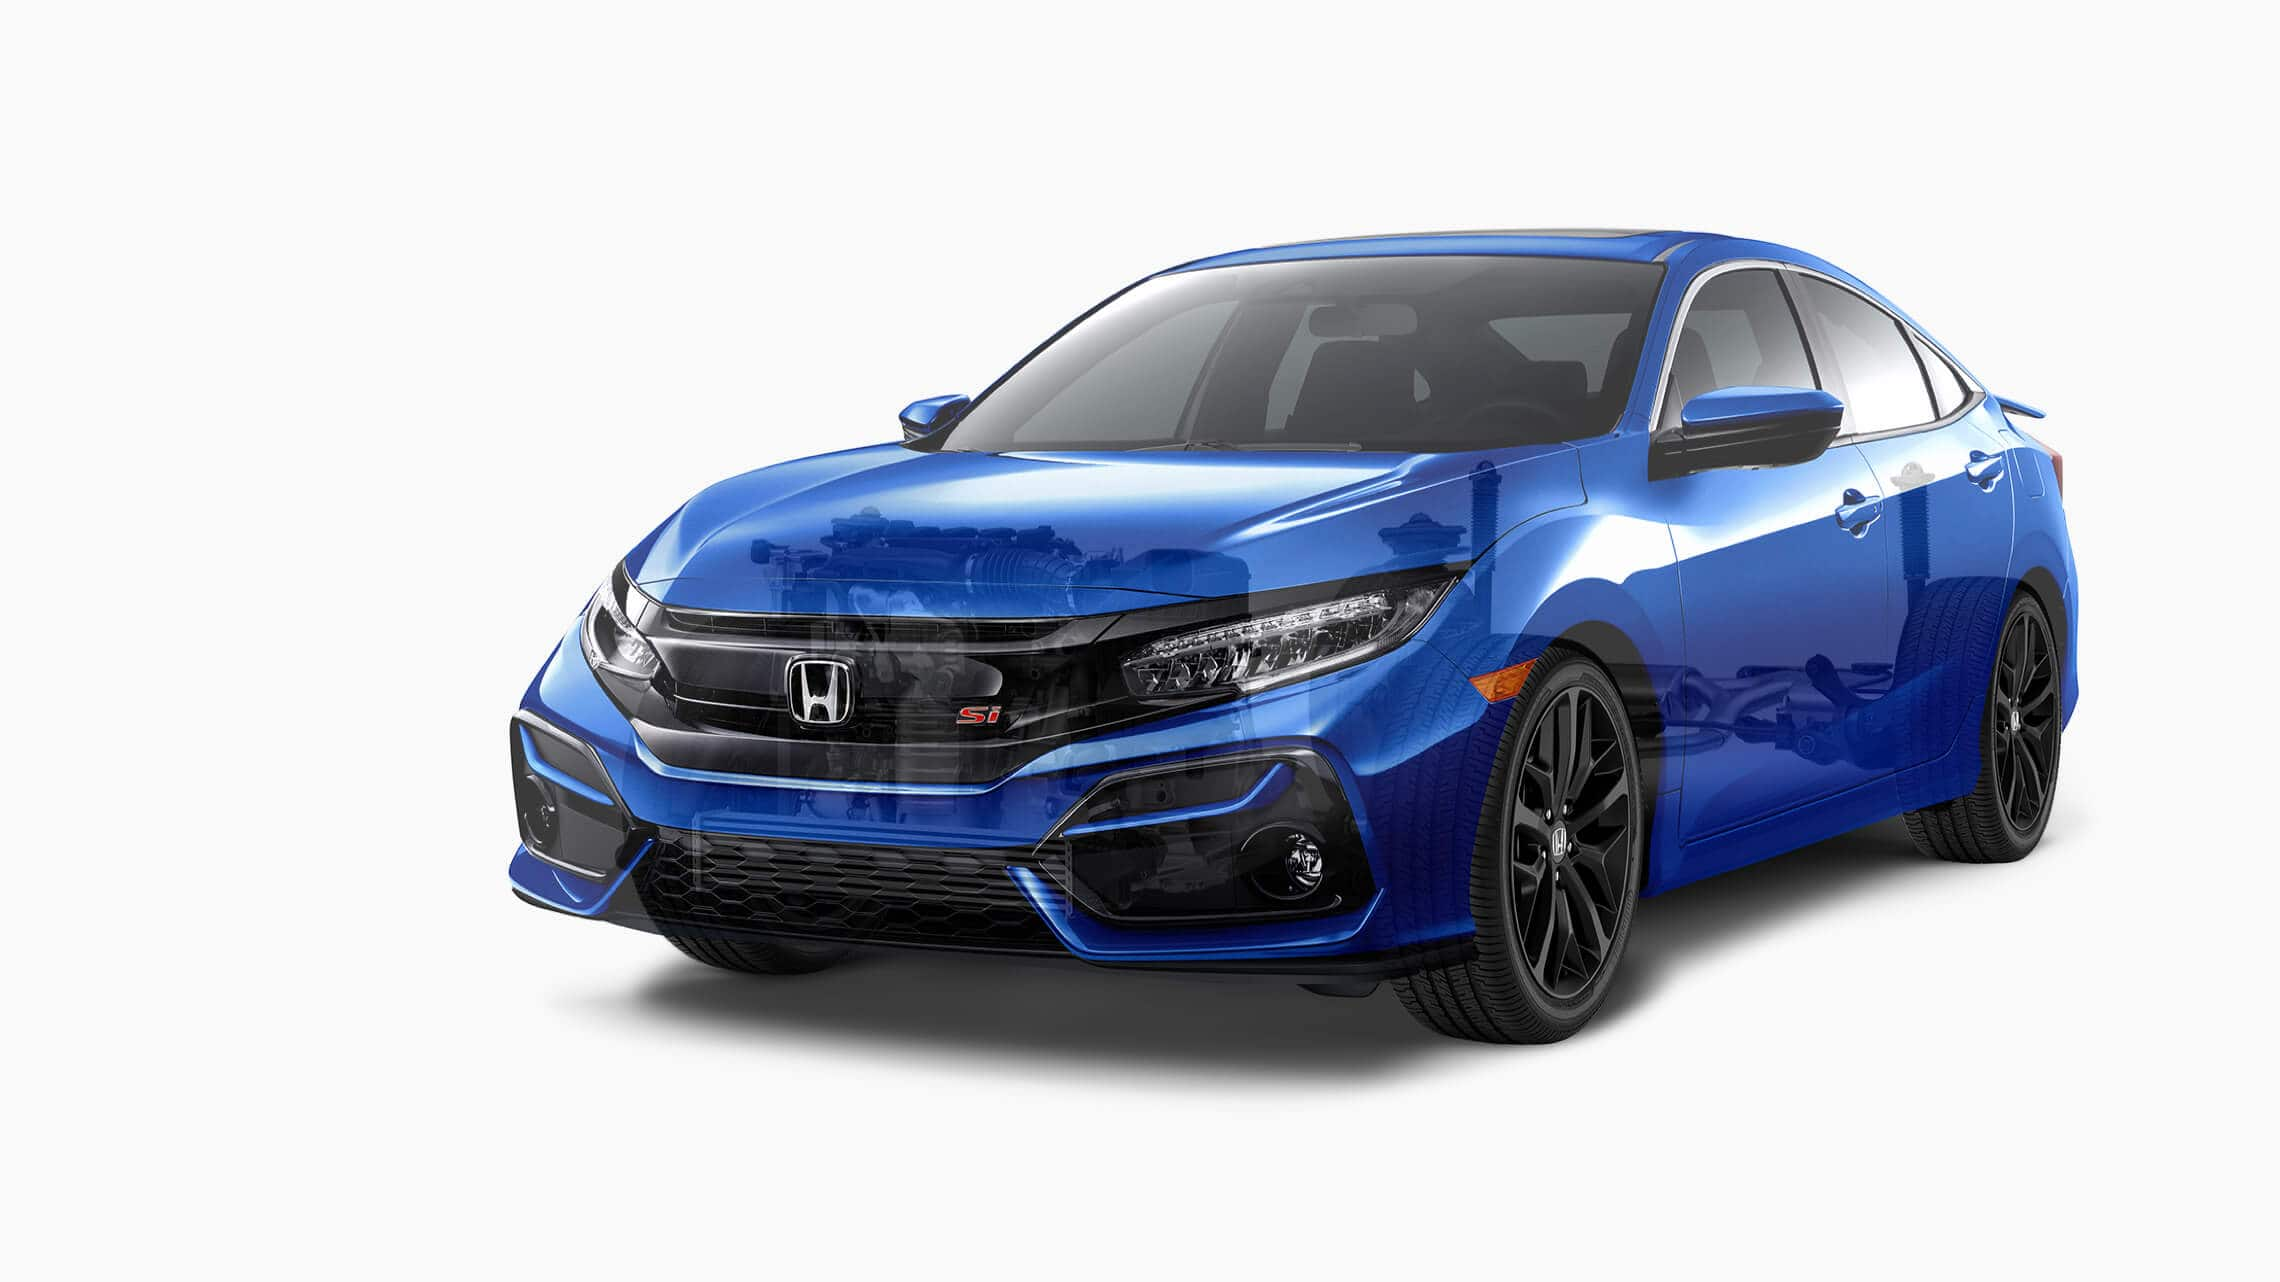 Front 7/8 driver's side view of 2020 Honda Civic Si Sedan in Aegean Blue Metallic displaying the powertrain and adaptive damper system detail.